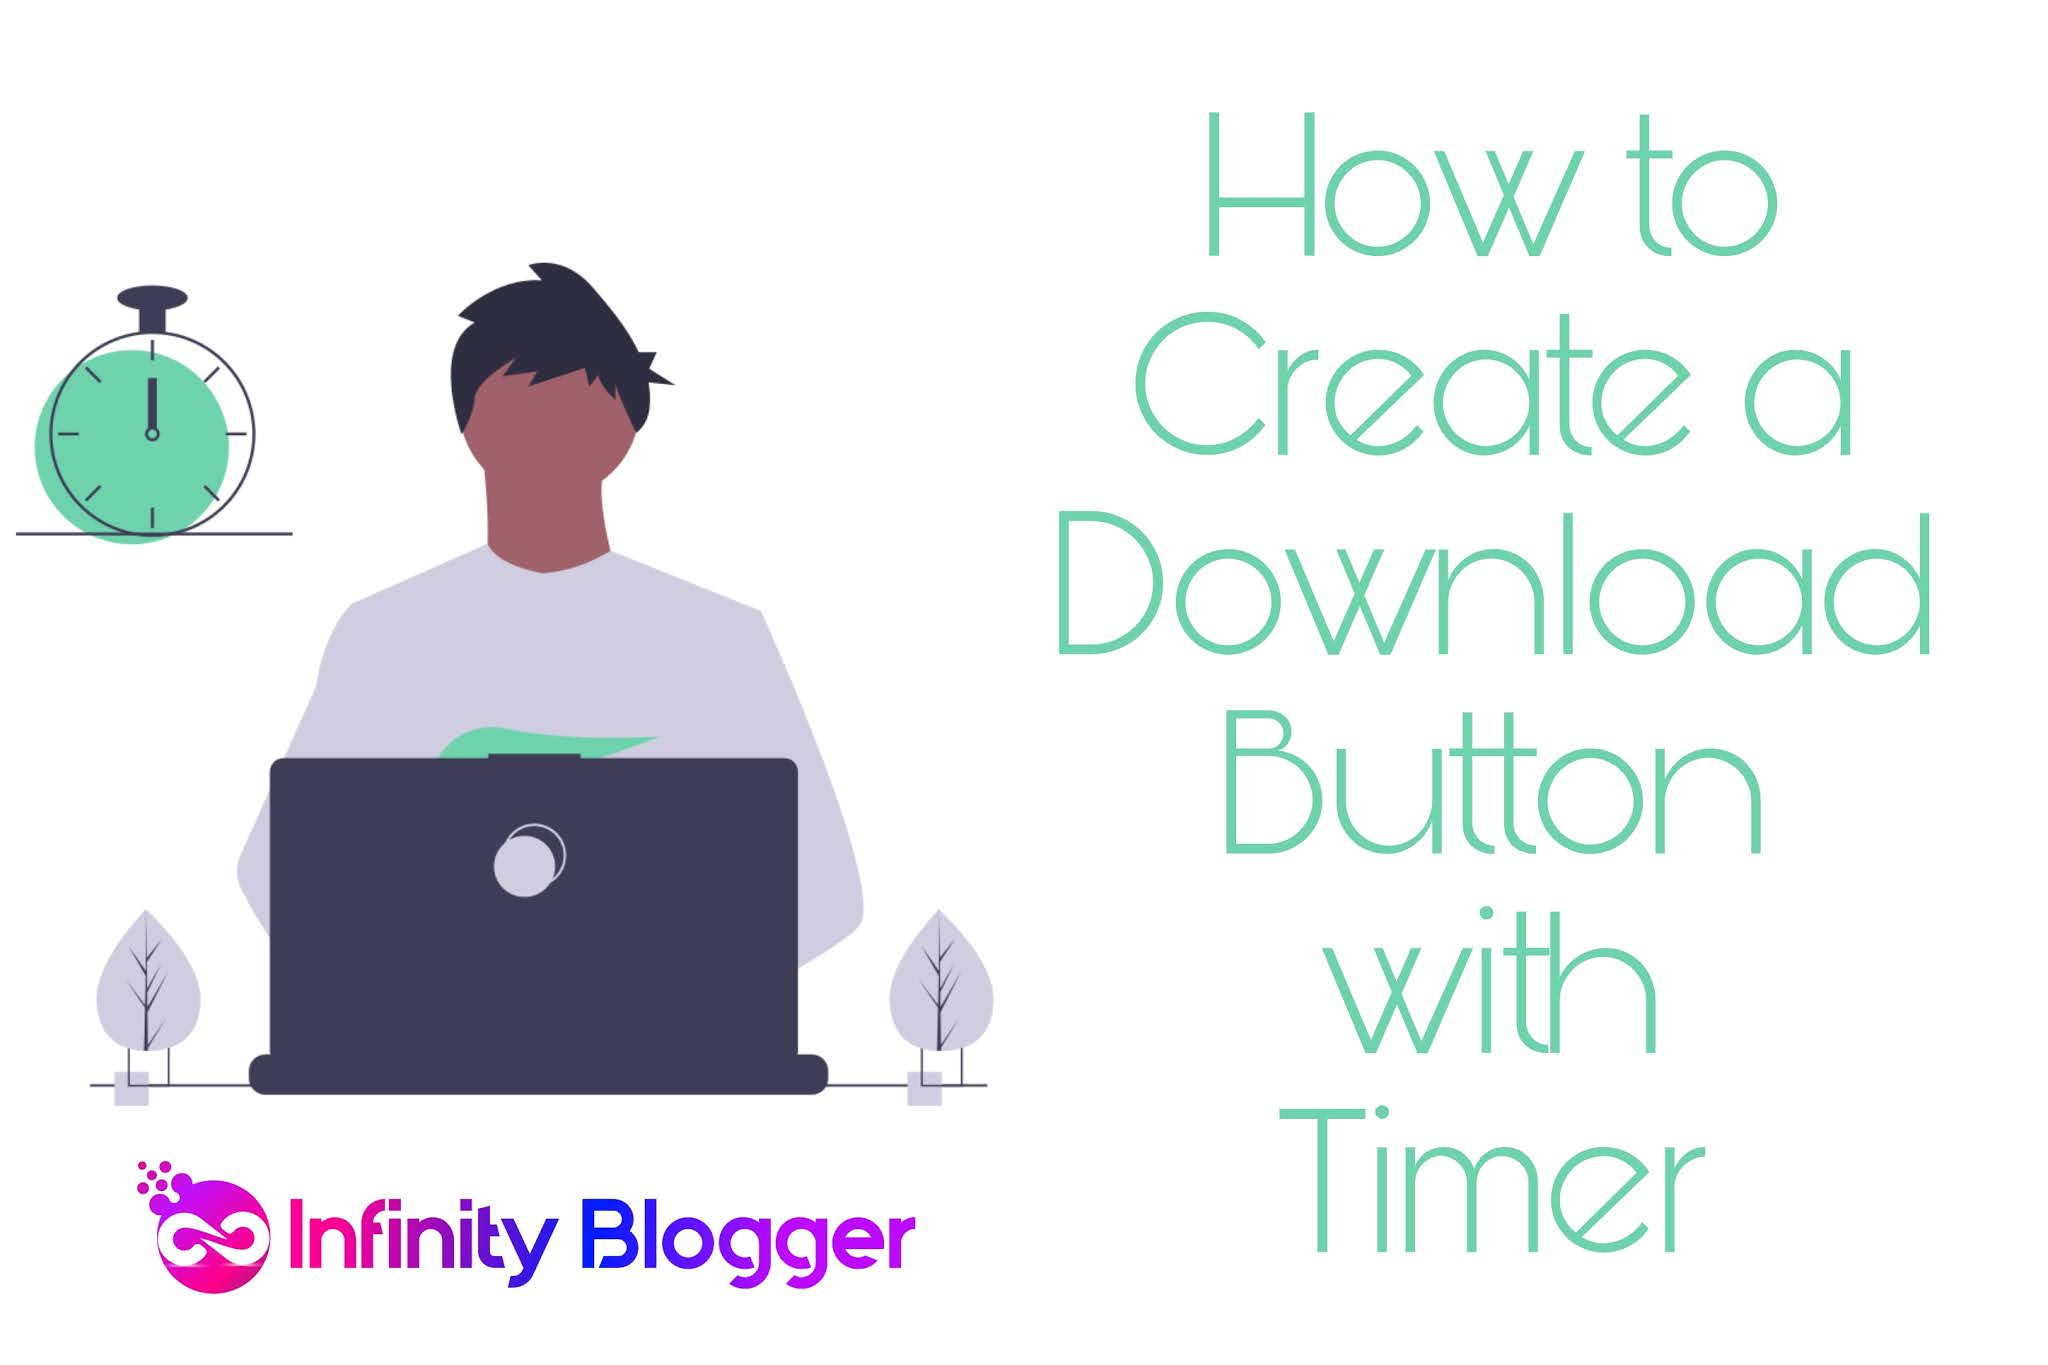 How to Create Download Button with timer for blogger 2021